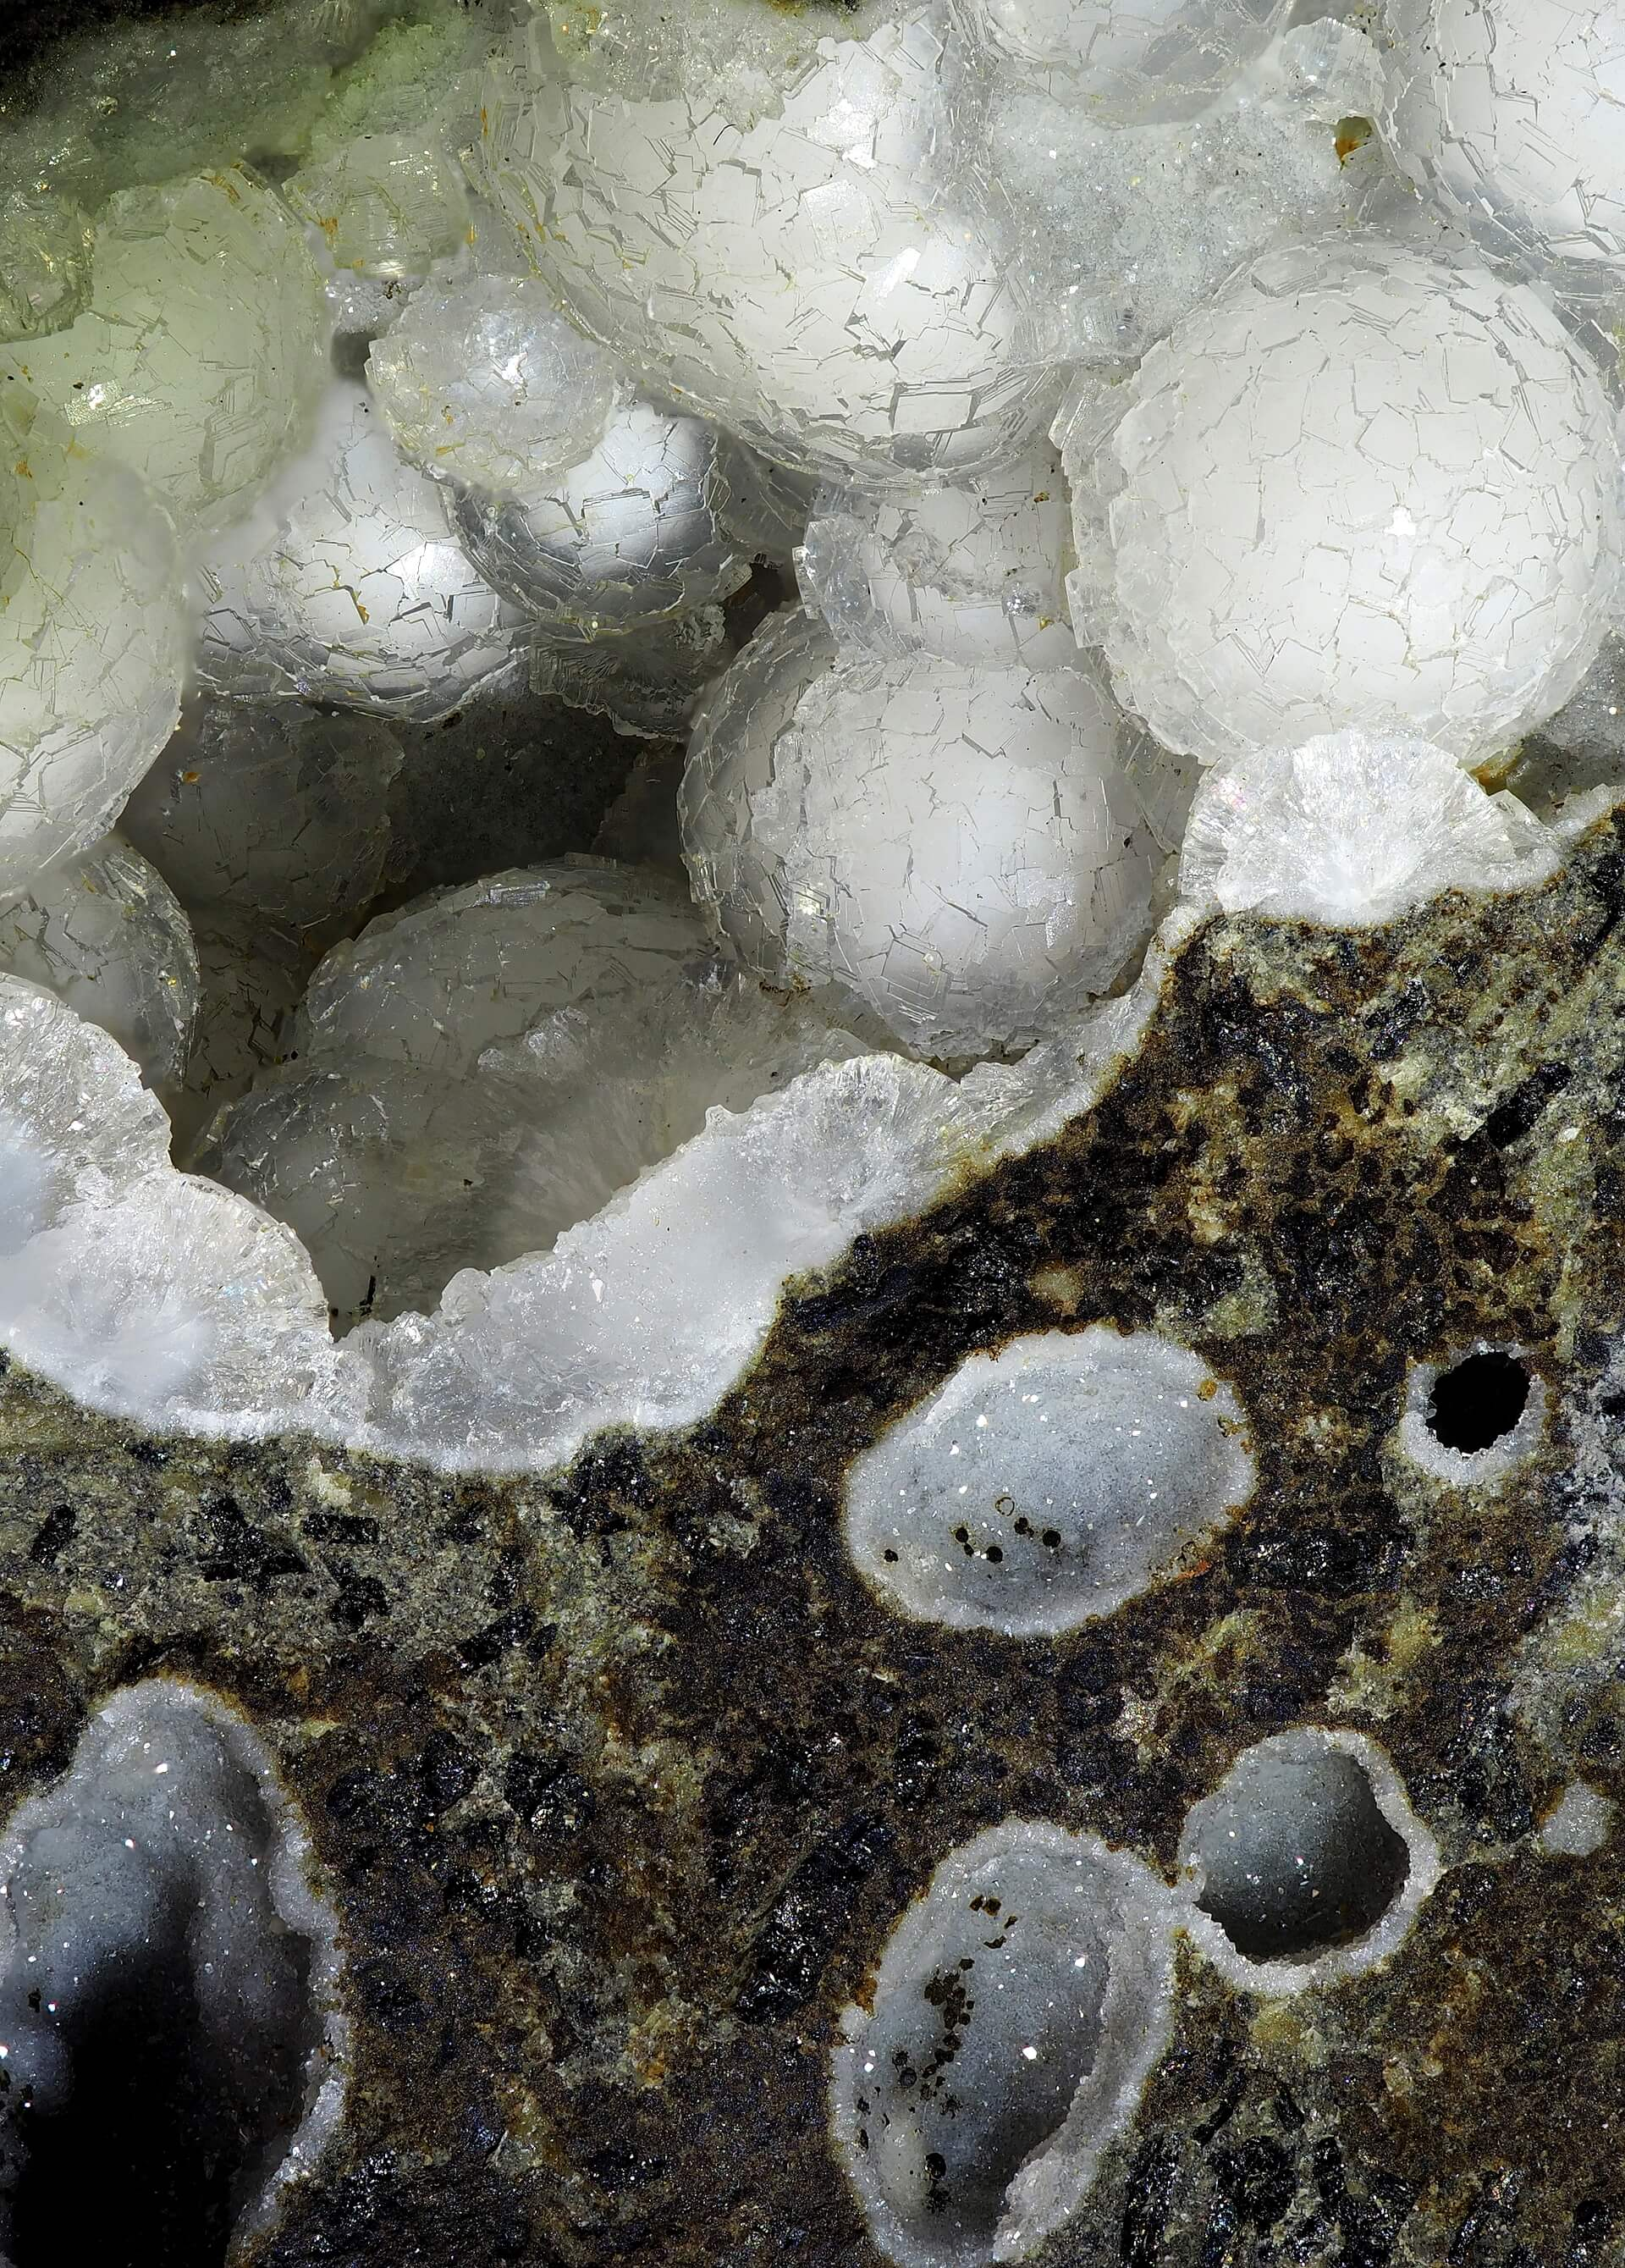 Many tiny Basalt vugs lined with Thomsonite crystals. One vug features large white balls of Thomsonite with a texture resembling a football (soccer ball).